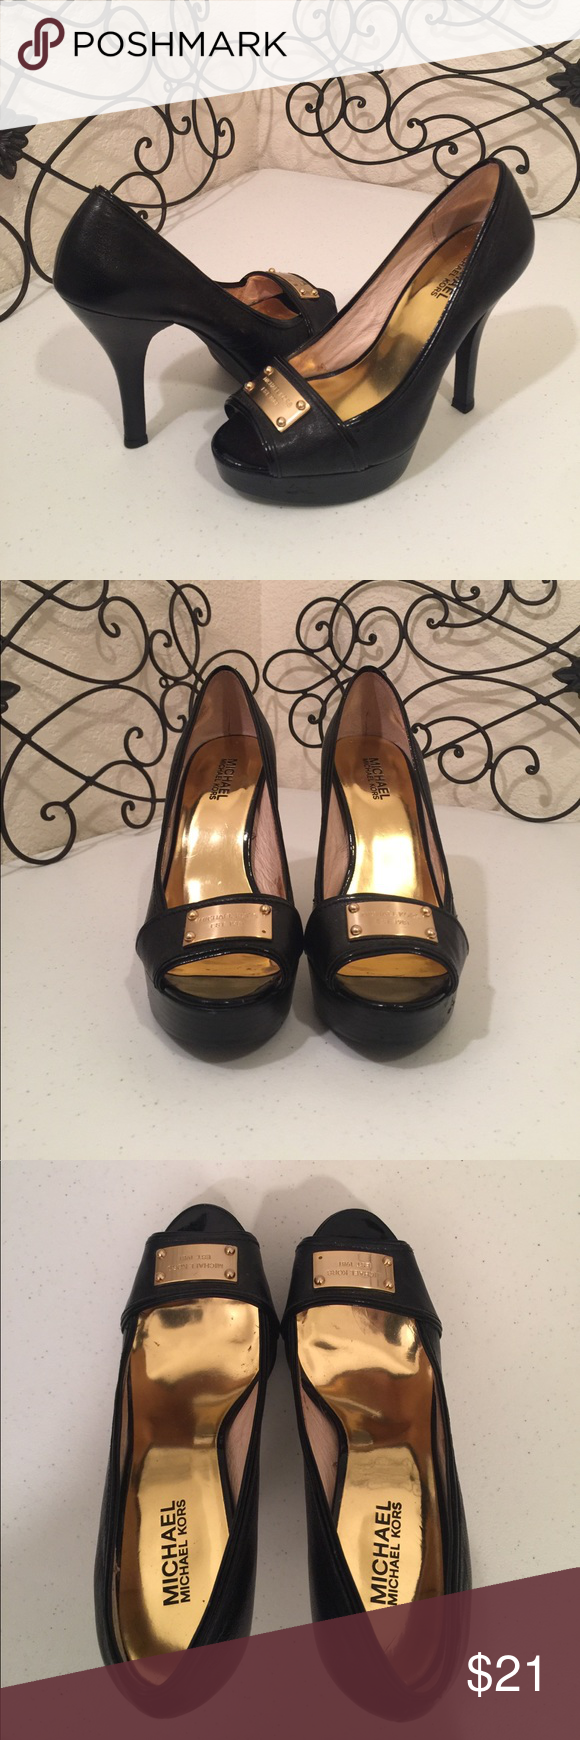 """MICHAEL KORS Leather Platform Heels Leather upper, rubber soles, 4.5"""" heel, 3/4"""" to 1"""" platform. One nail head missing, see photo, not noticeable from a distance, price reflects. PRICE FIRM. Please check out the rest of my🚪closet!💎 MICHAEL Michael Kors Shoes Platforms"""